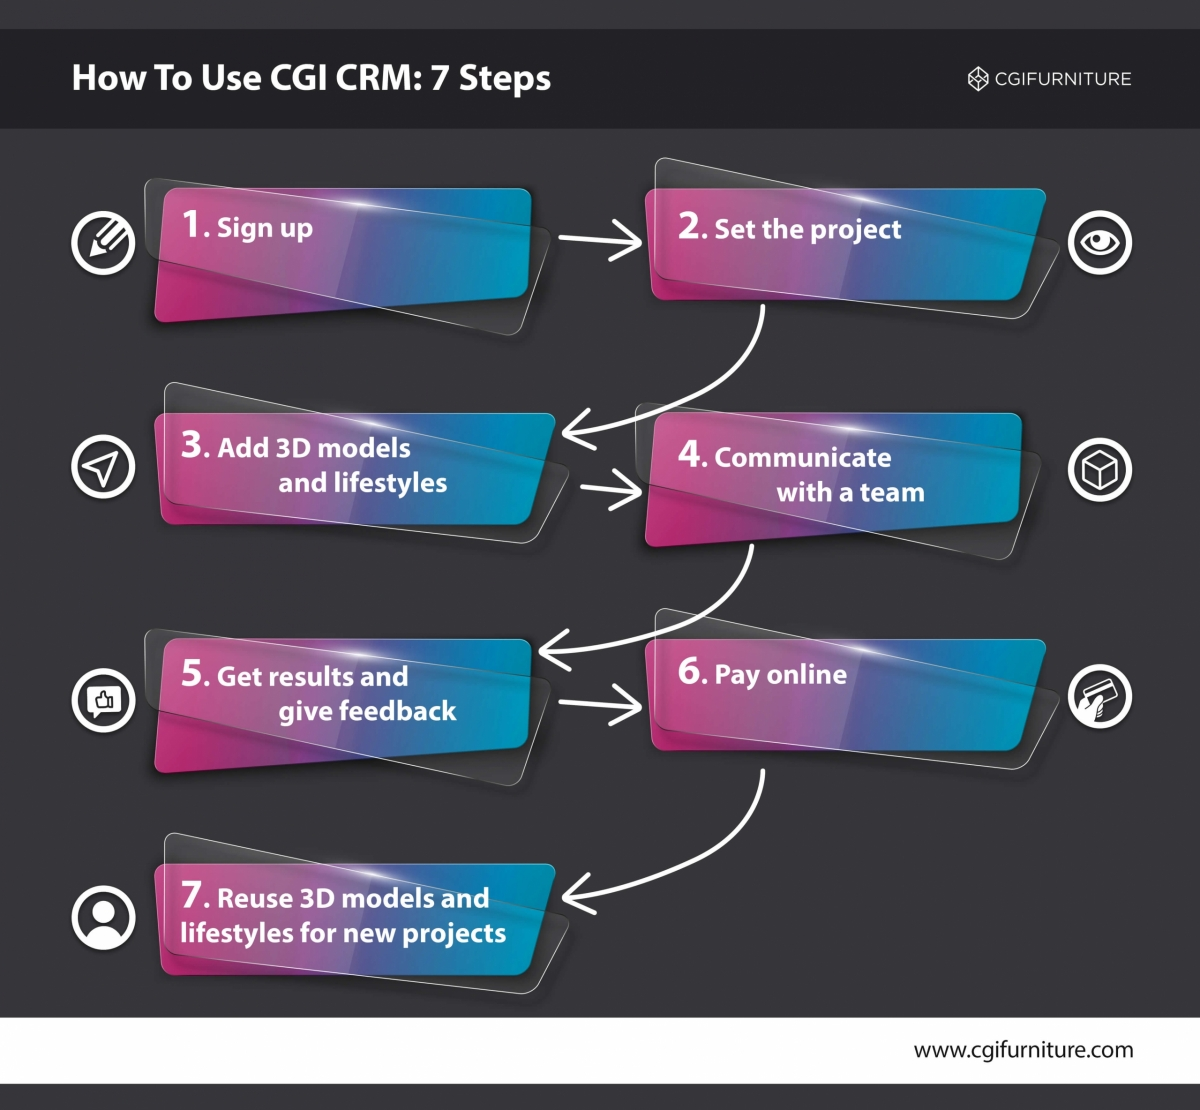 The Process of Using CRM When Working with a CGI Studio